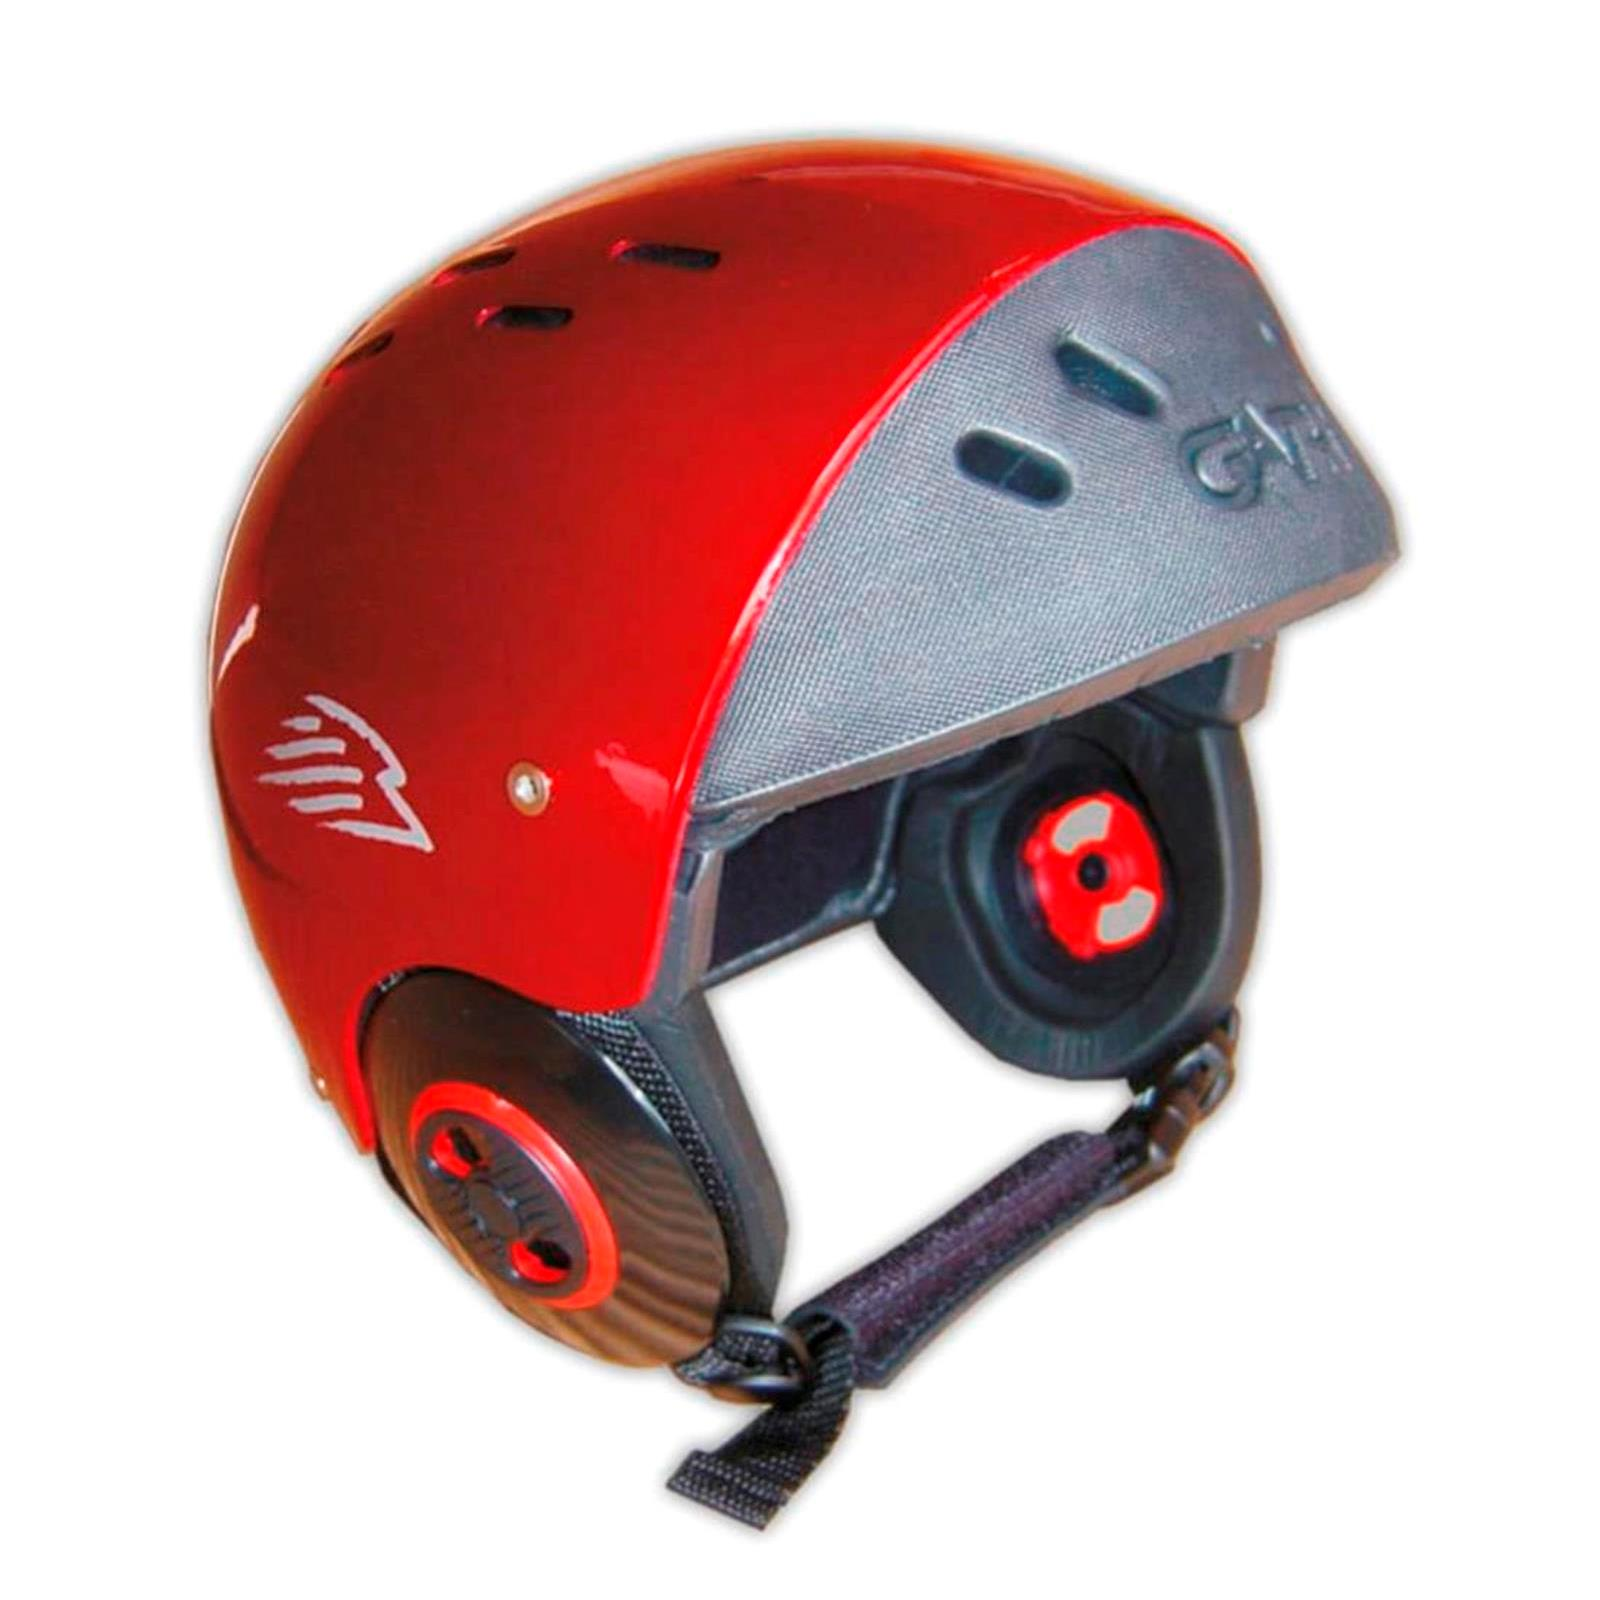 GATH Wassersport Helm SFC Convertible S Rot